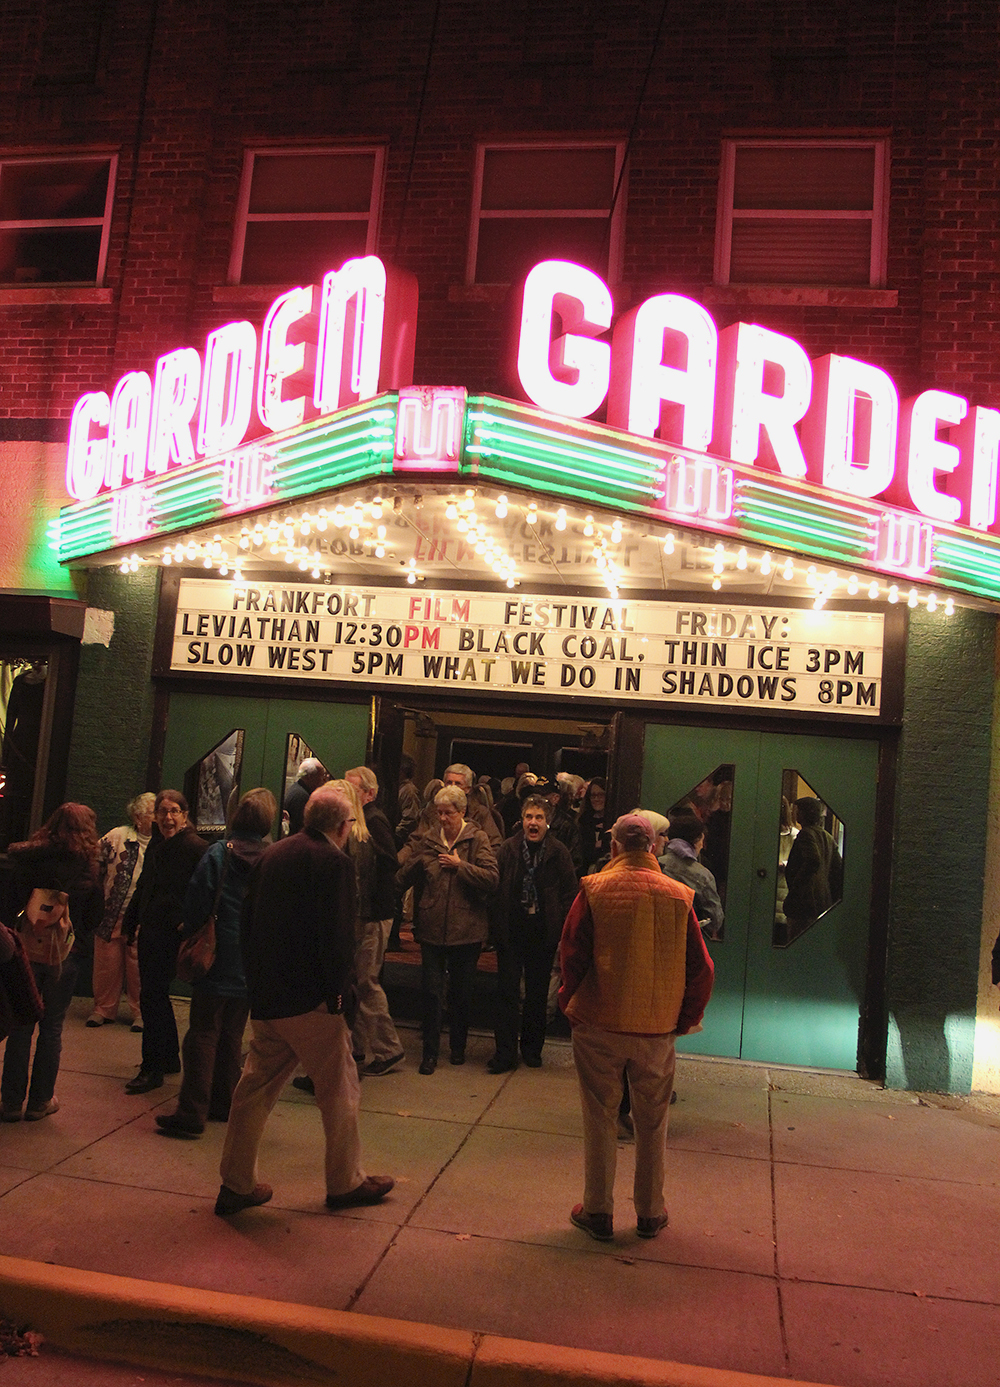 neon movie theater lights Frankfort Film Festival 2015 The Garden Theater F3 Frankfort Michigan